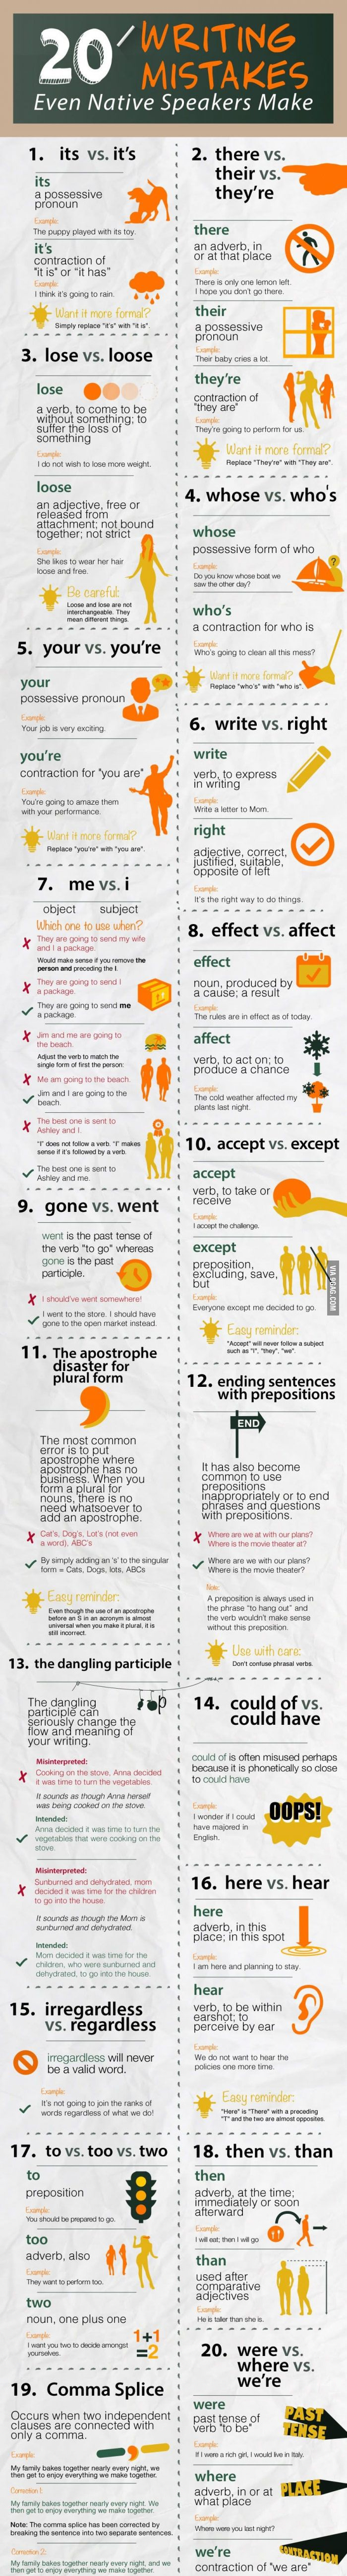 20 English Writing Mistakes Even Native Speakers Make